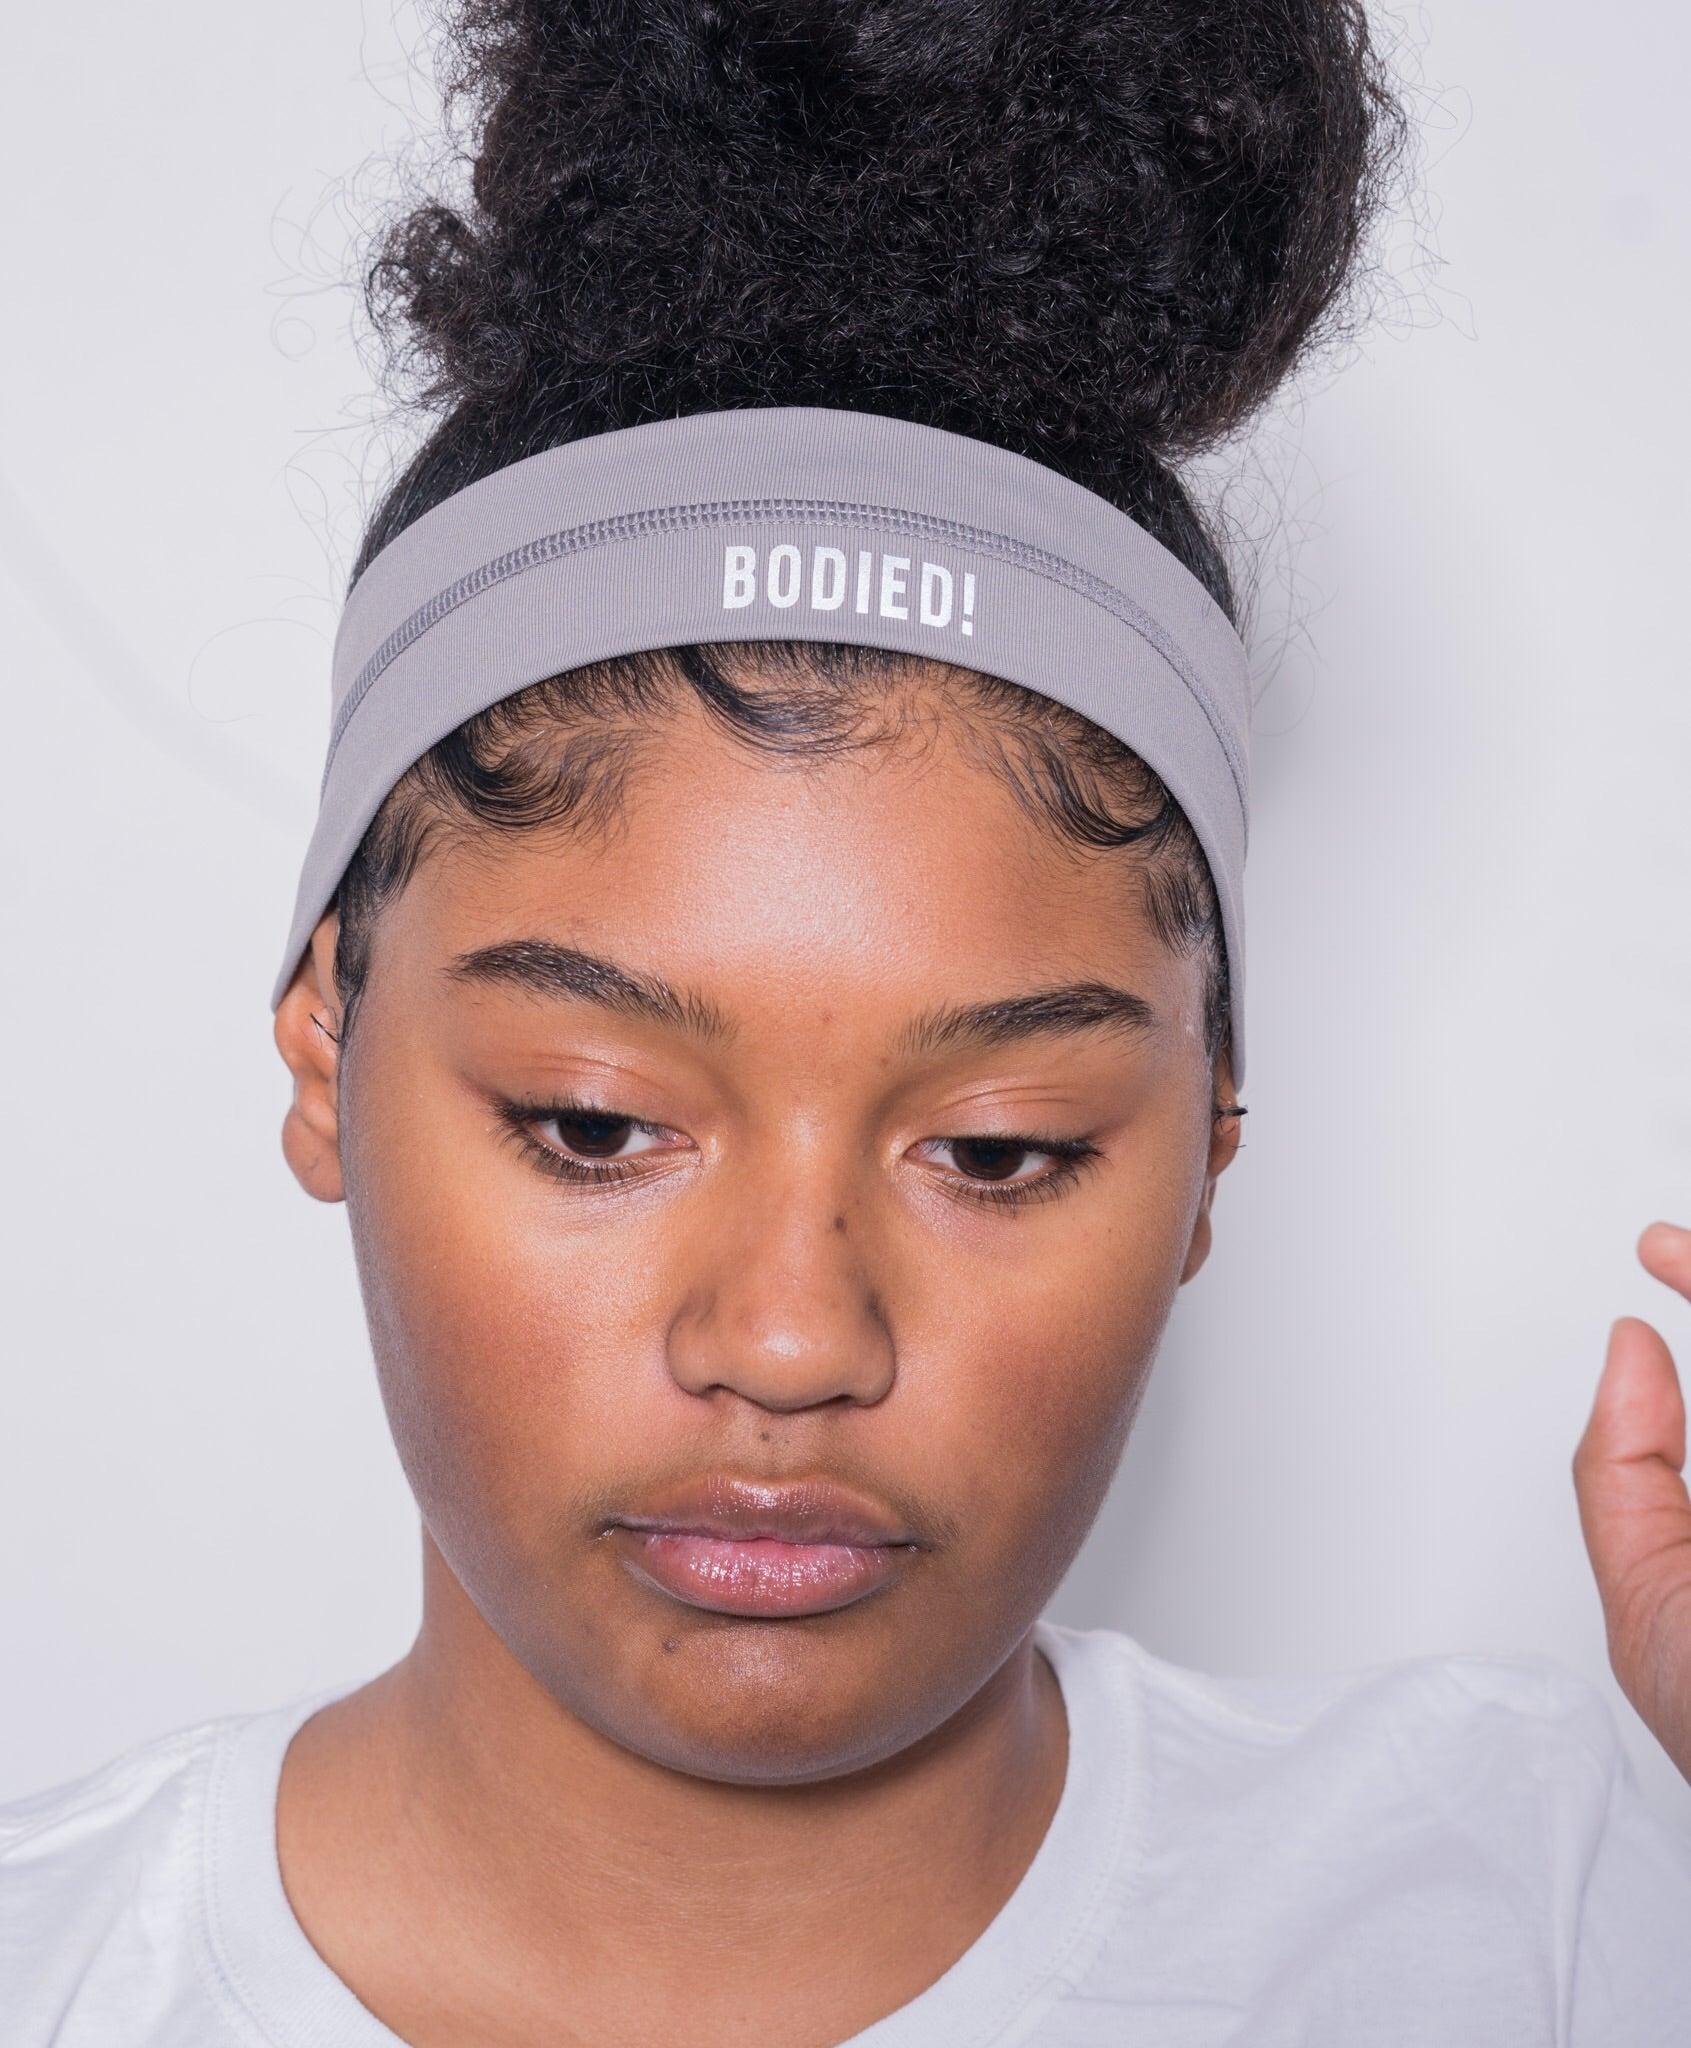 Bodied headbands